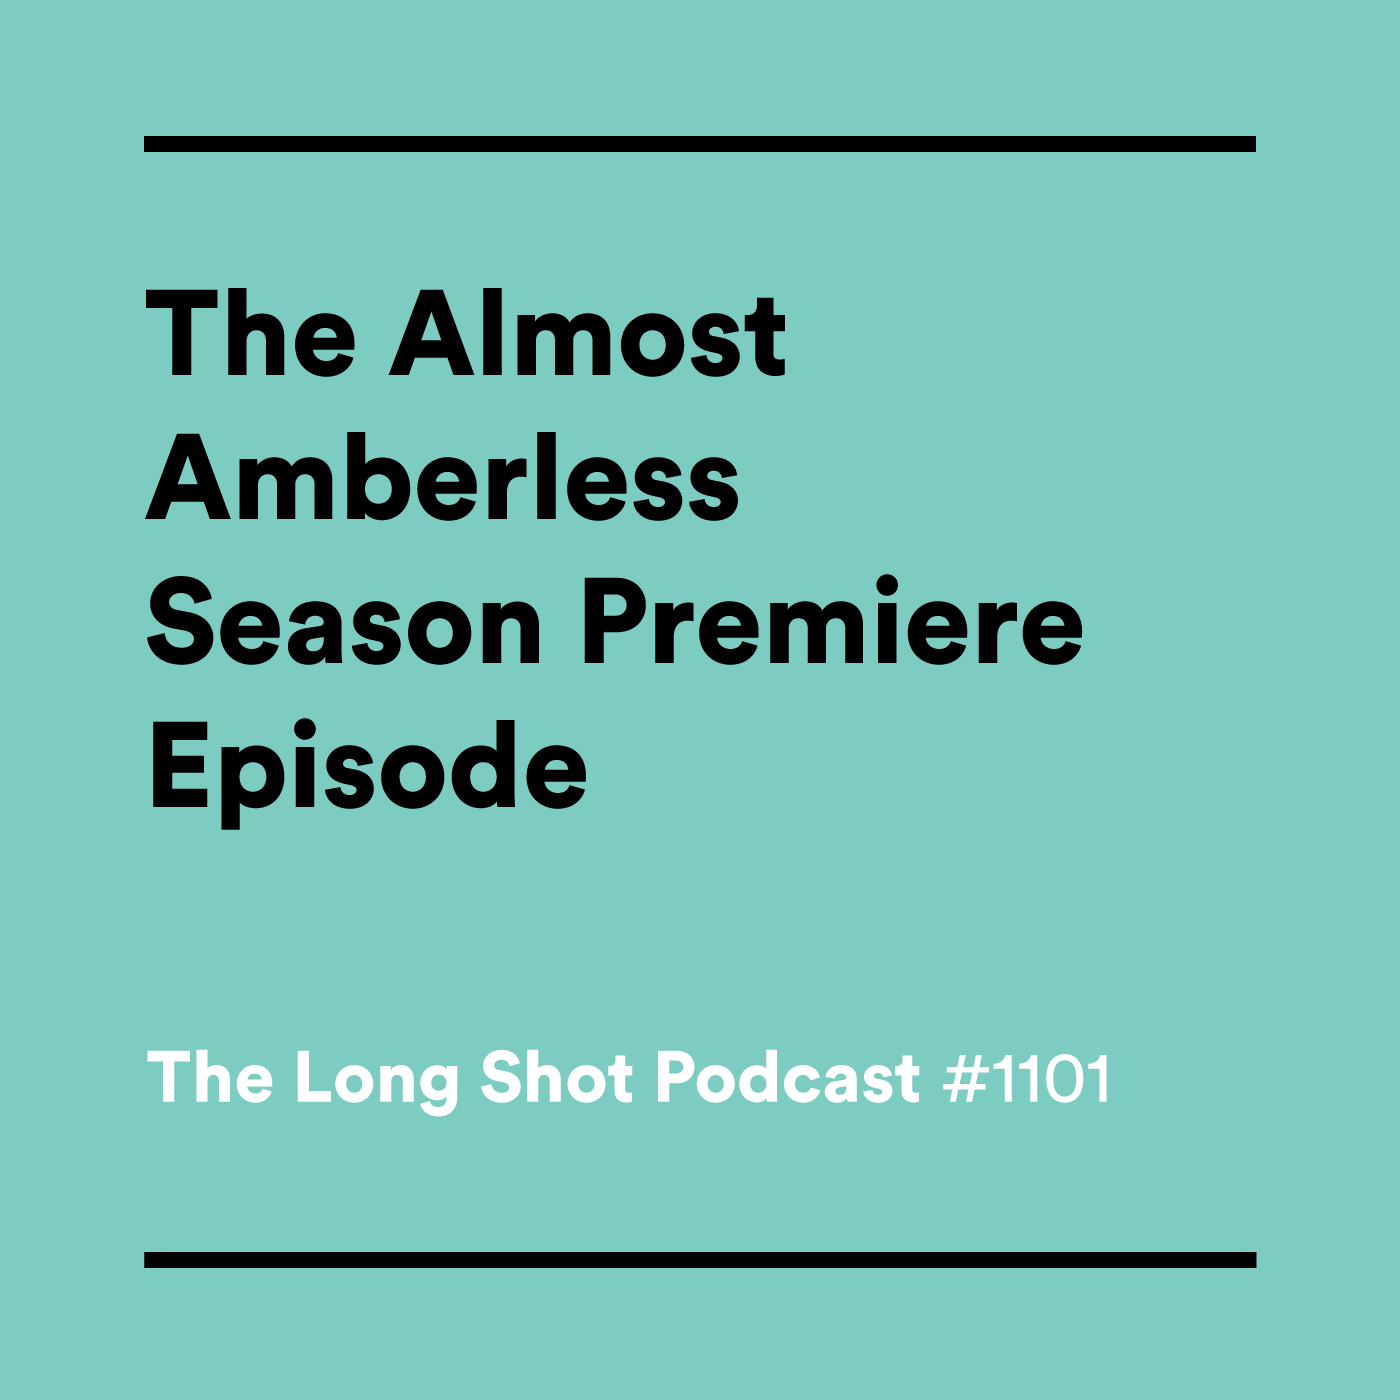 #1101 The Almost Amberless Season Premiere Episode